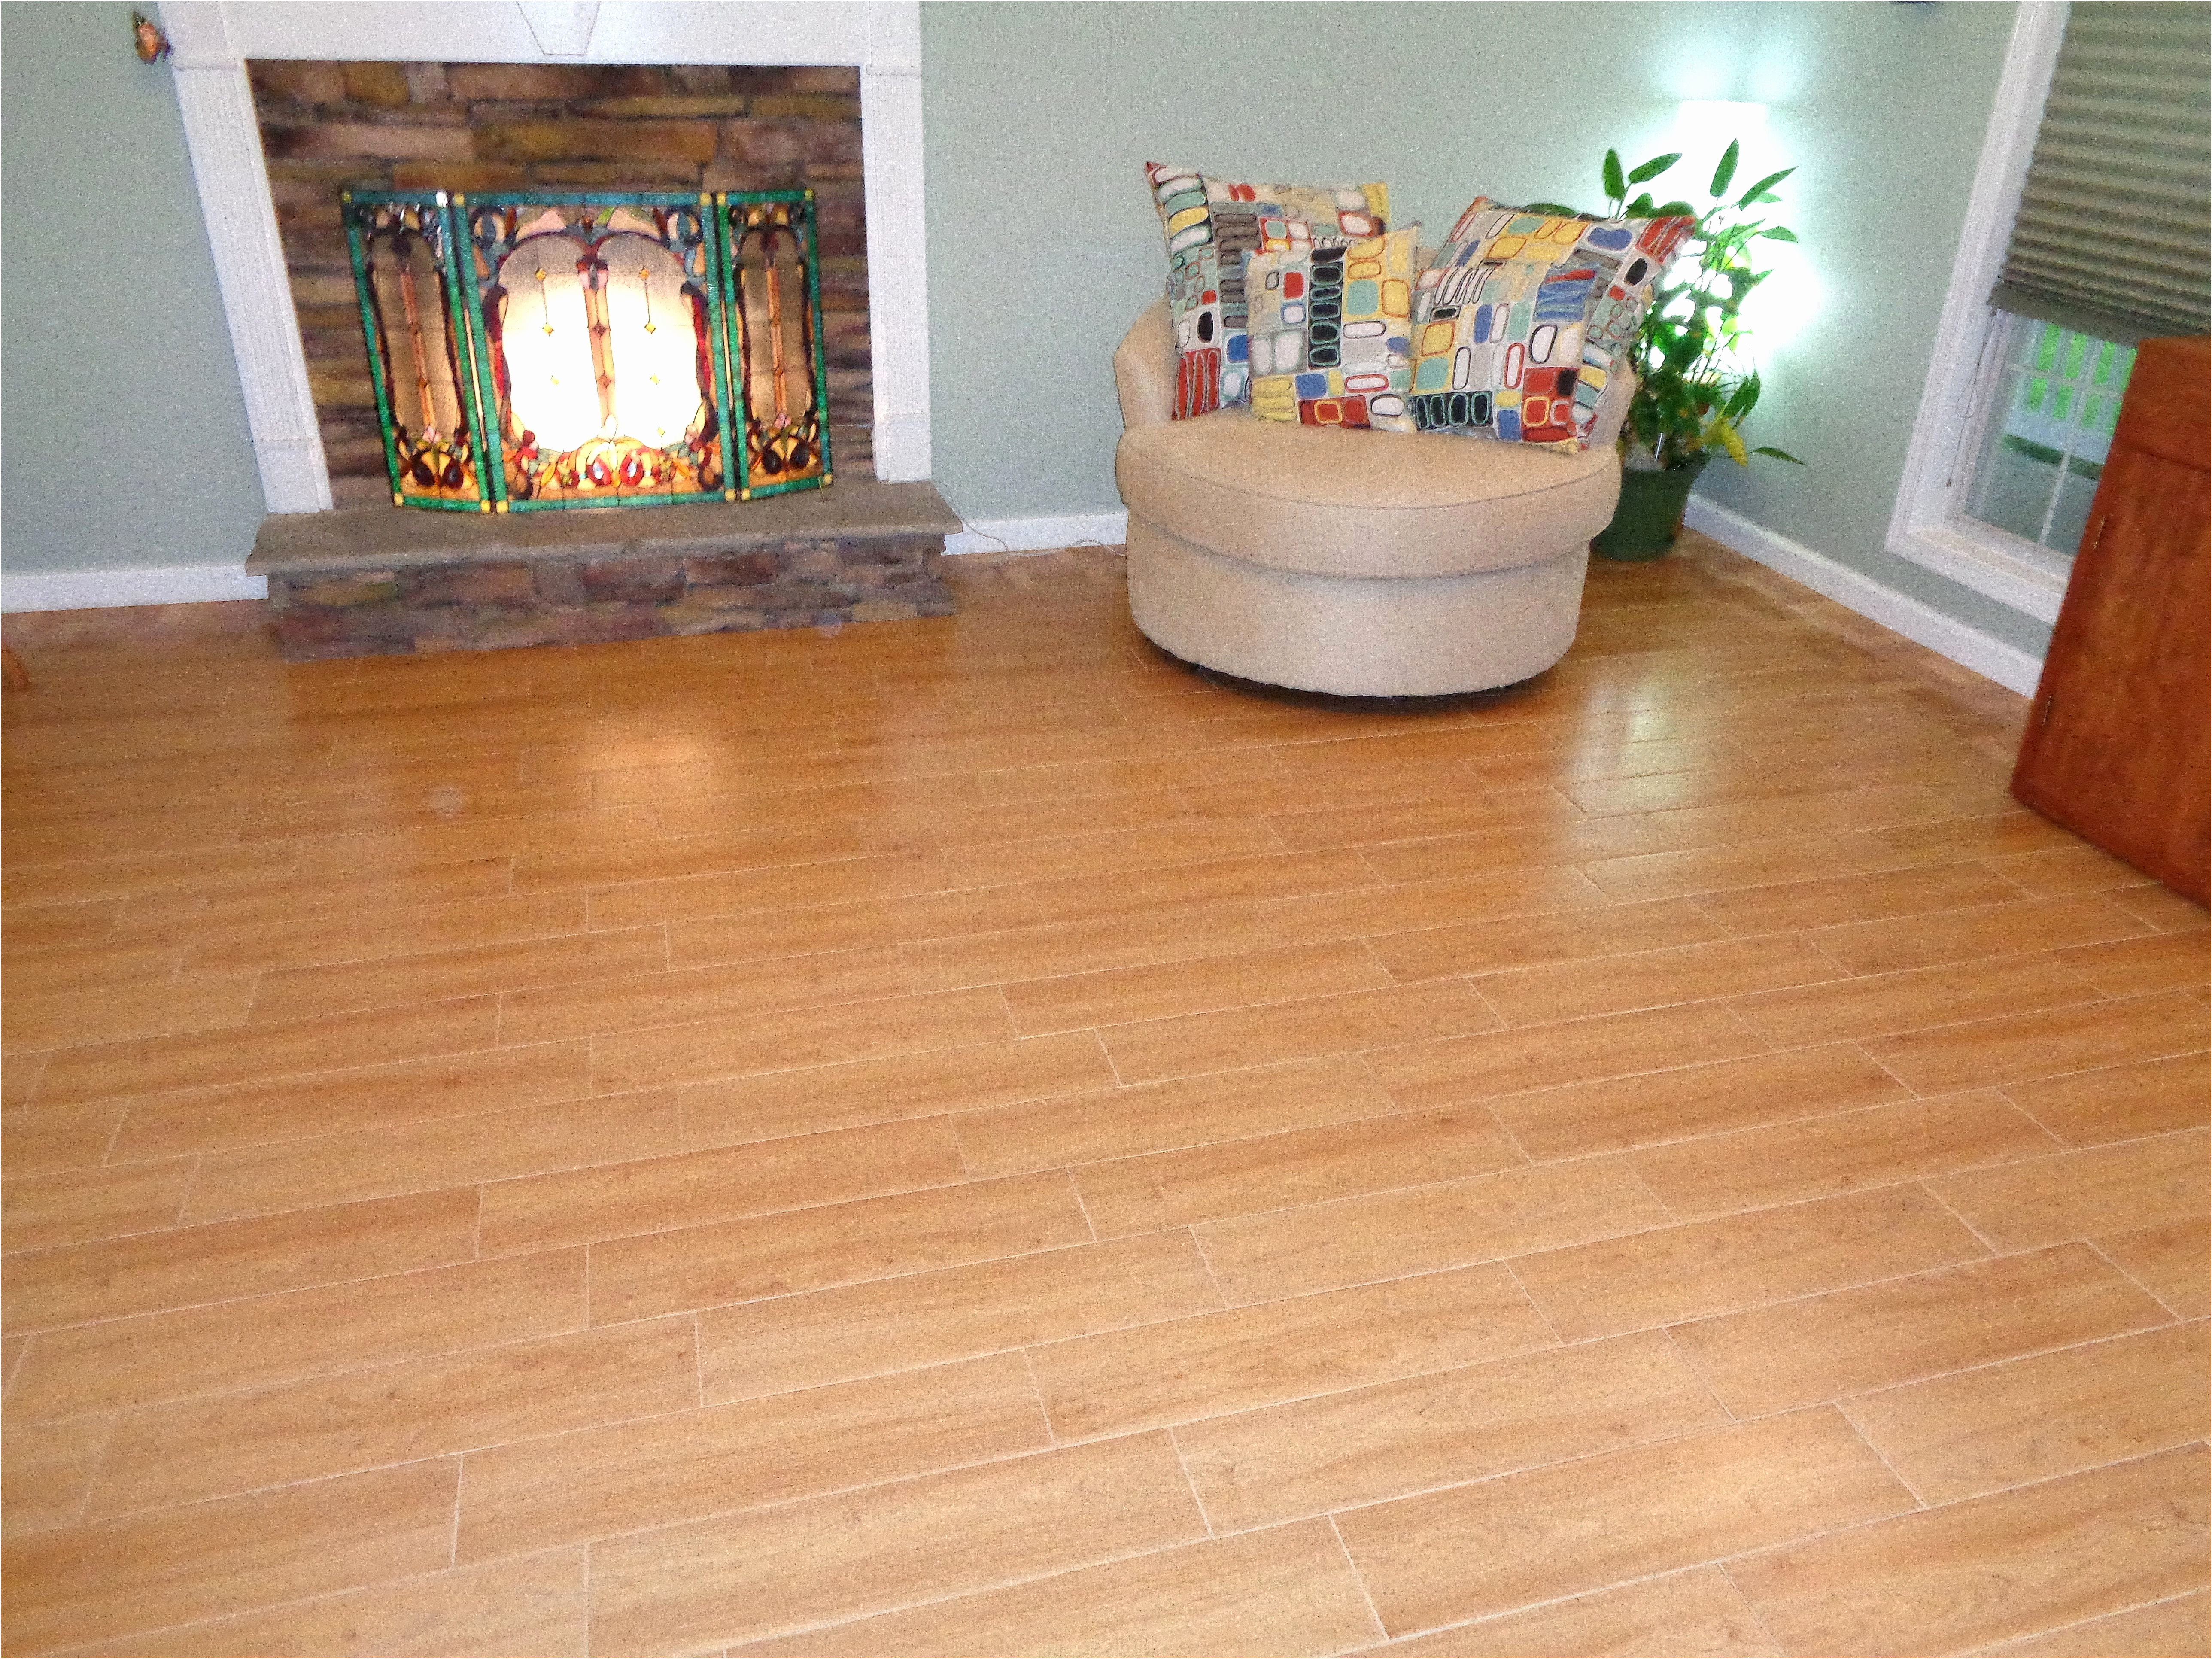 discount hardwood flooring online of laminate flooring clearance floor plan ideas throughout laminate flooring clearance laminate wood flooring sale best clearance flooring 0d unique